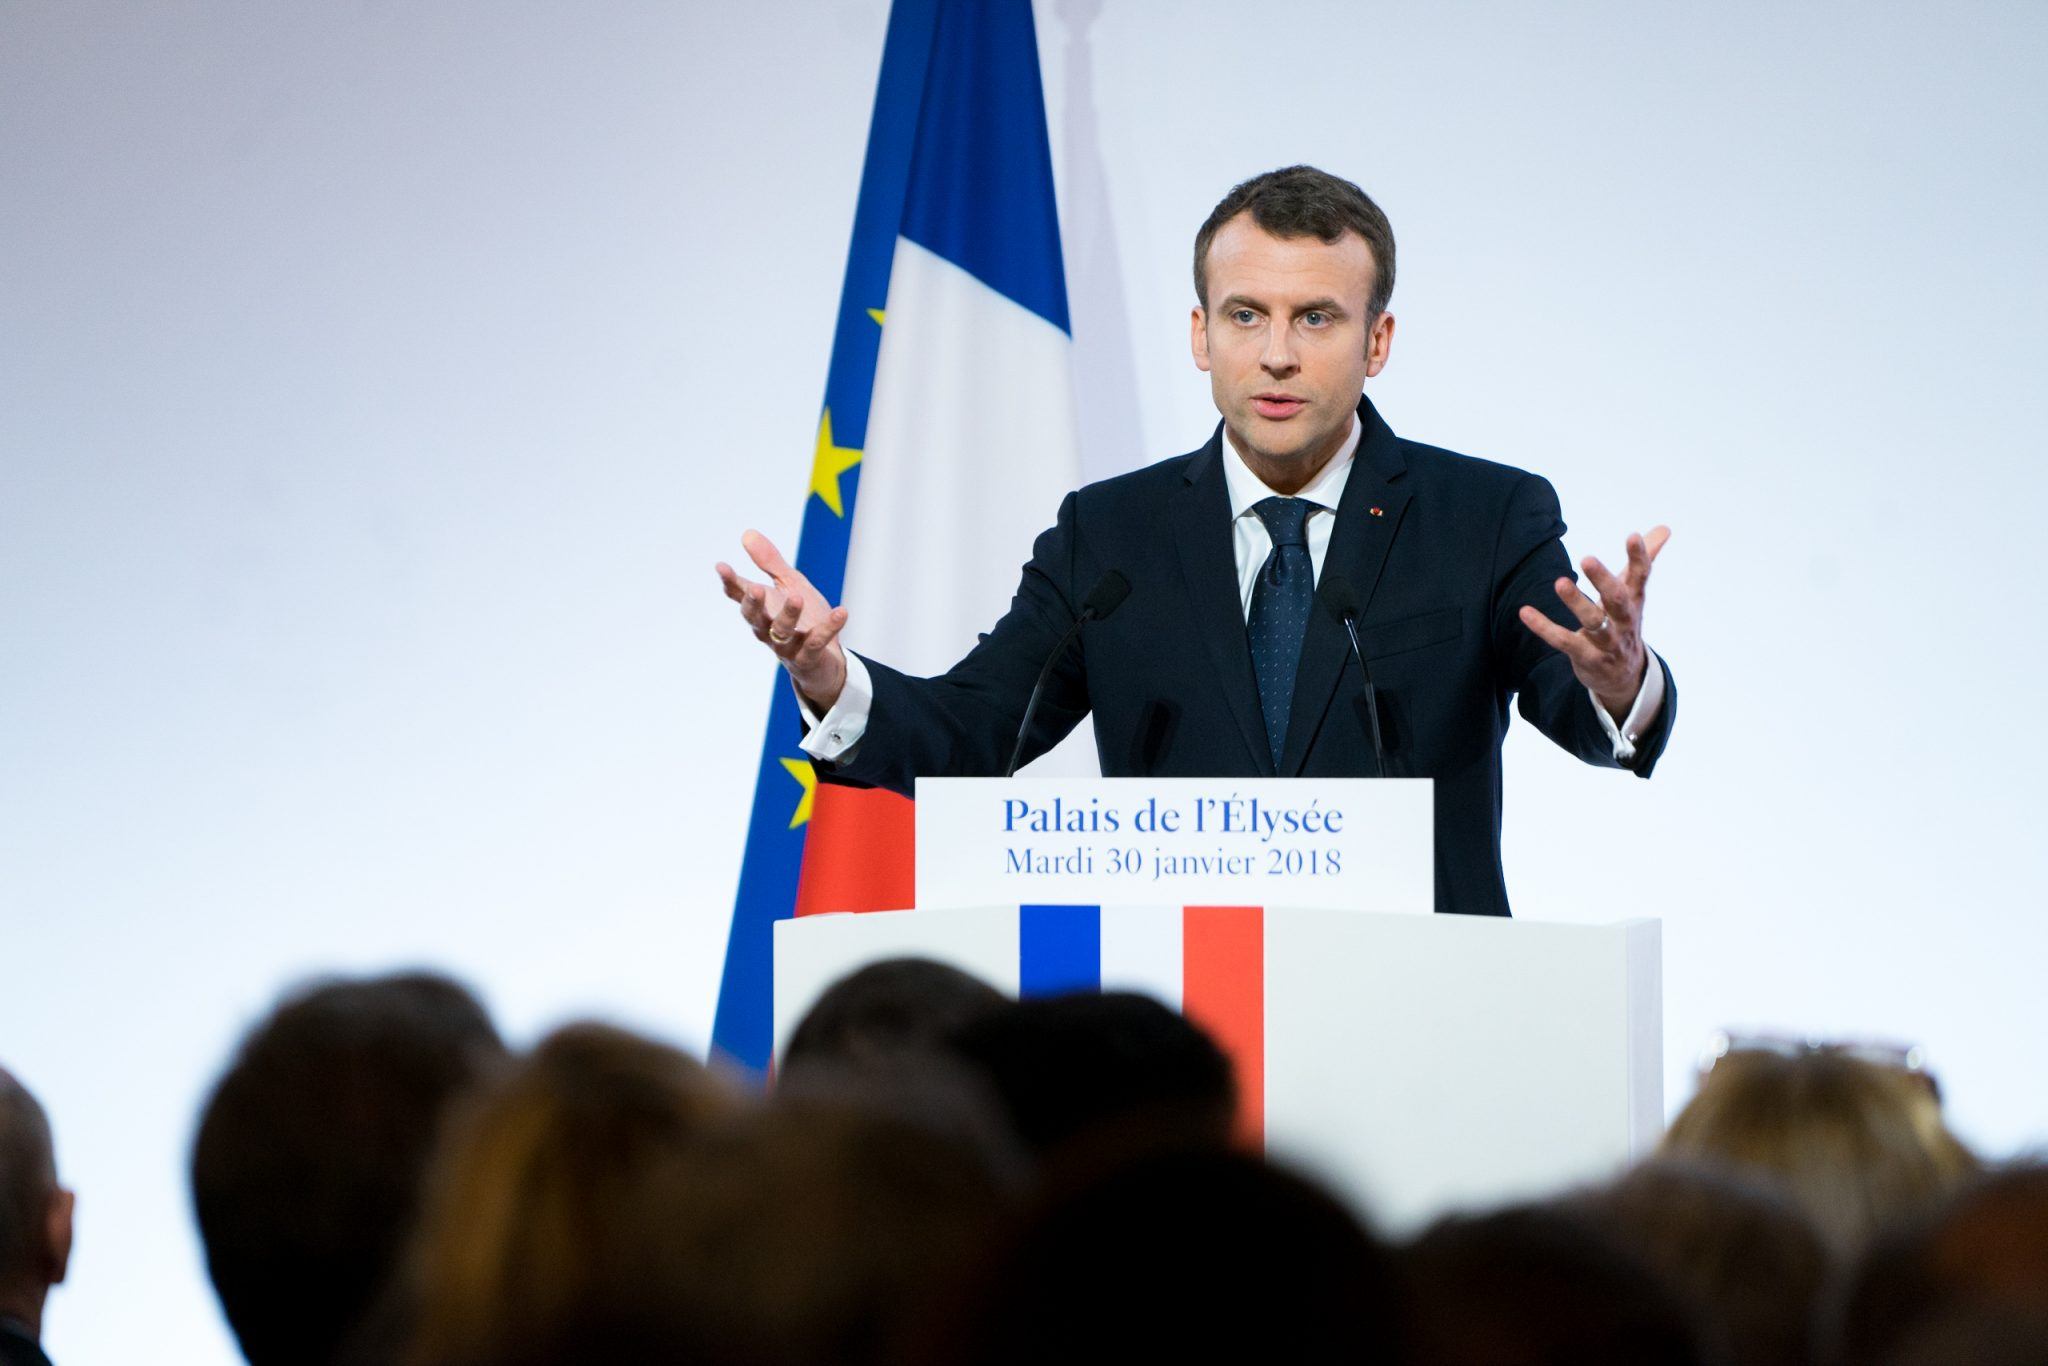 https://commons.wikimedia.org/wiki/File:Emmanuel_Macron_(32605283887).jpg